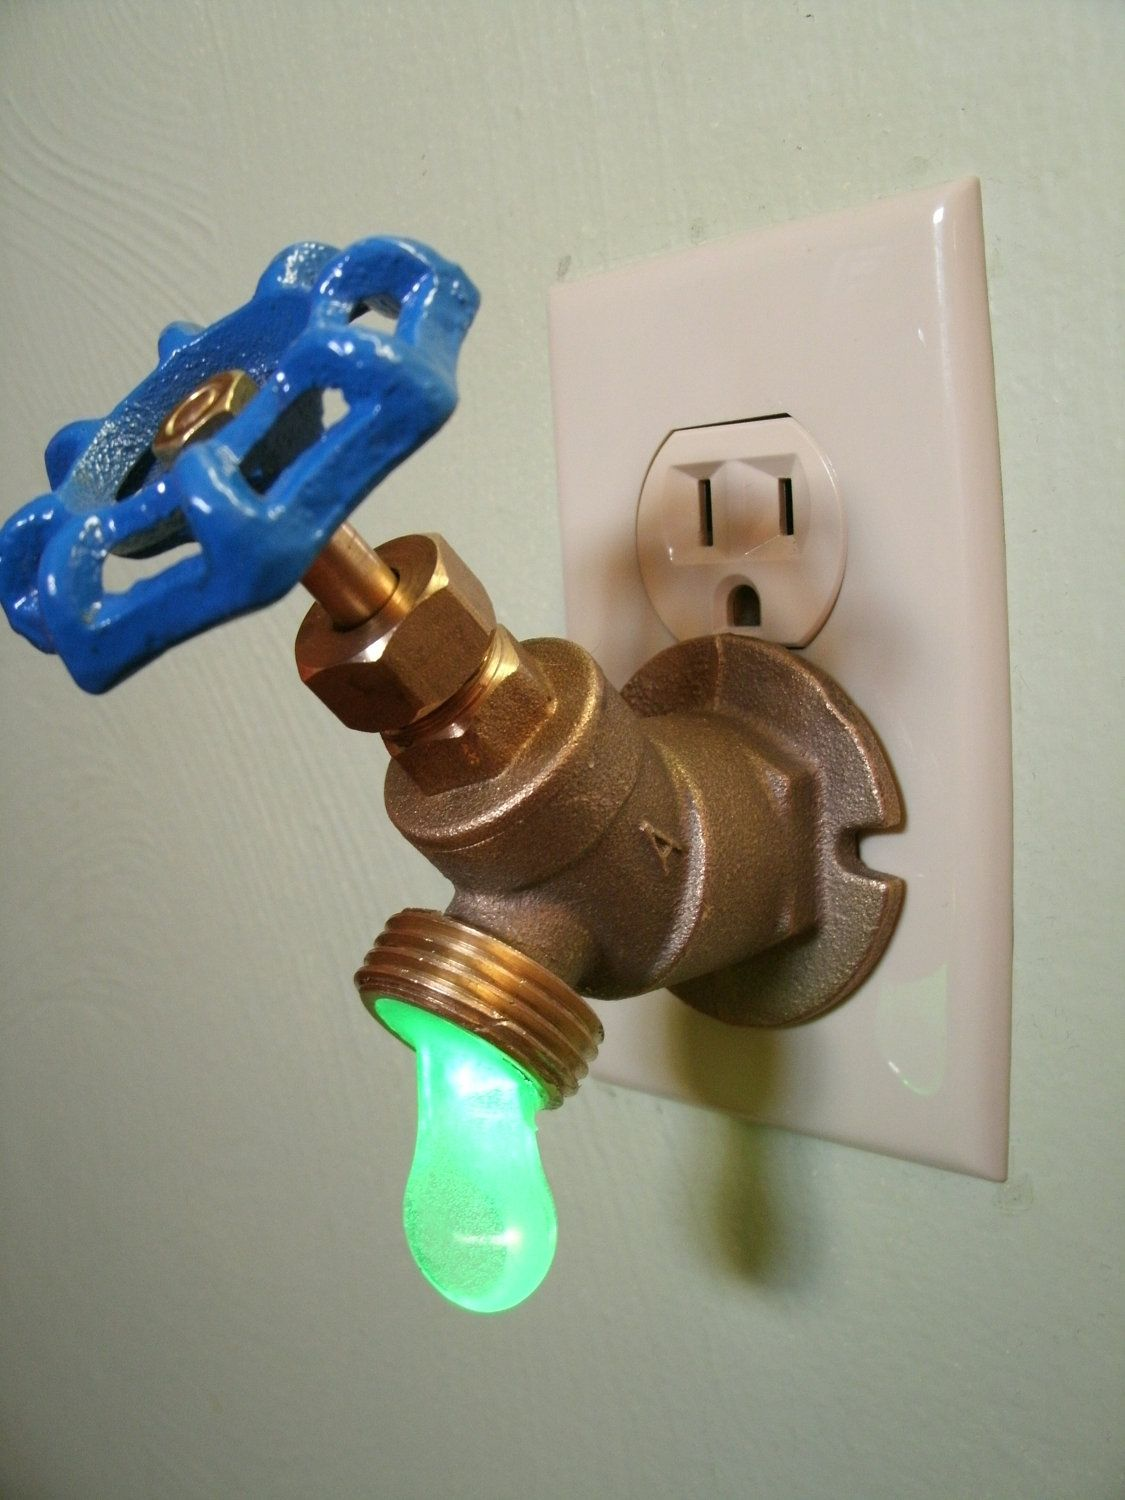 Nightlight, turn the faucet to turn it off or on.